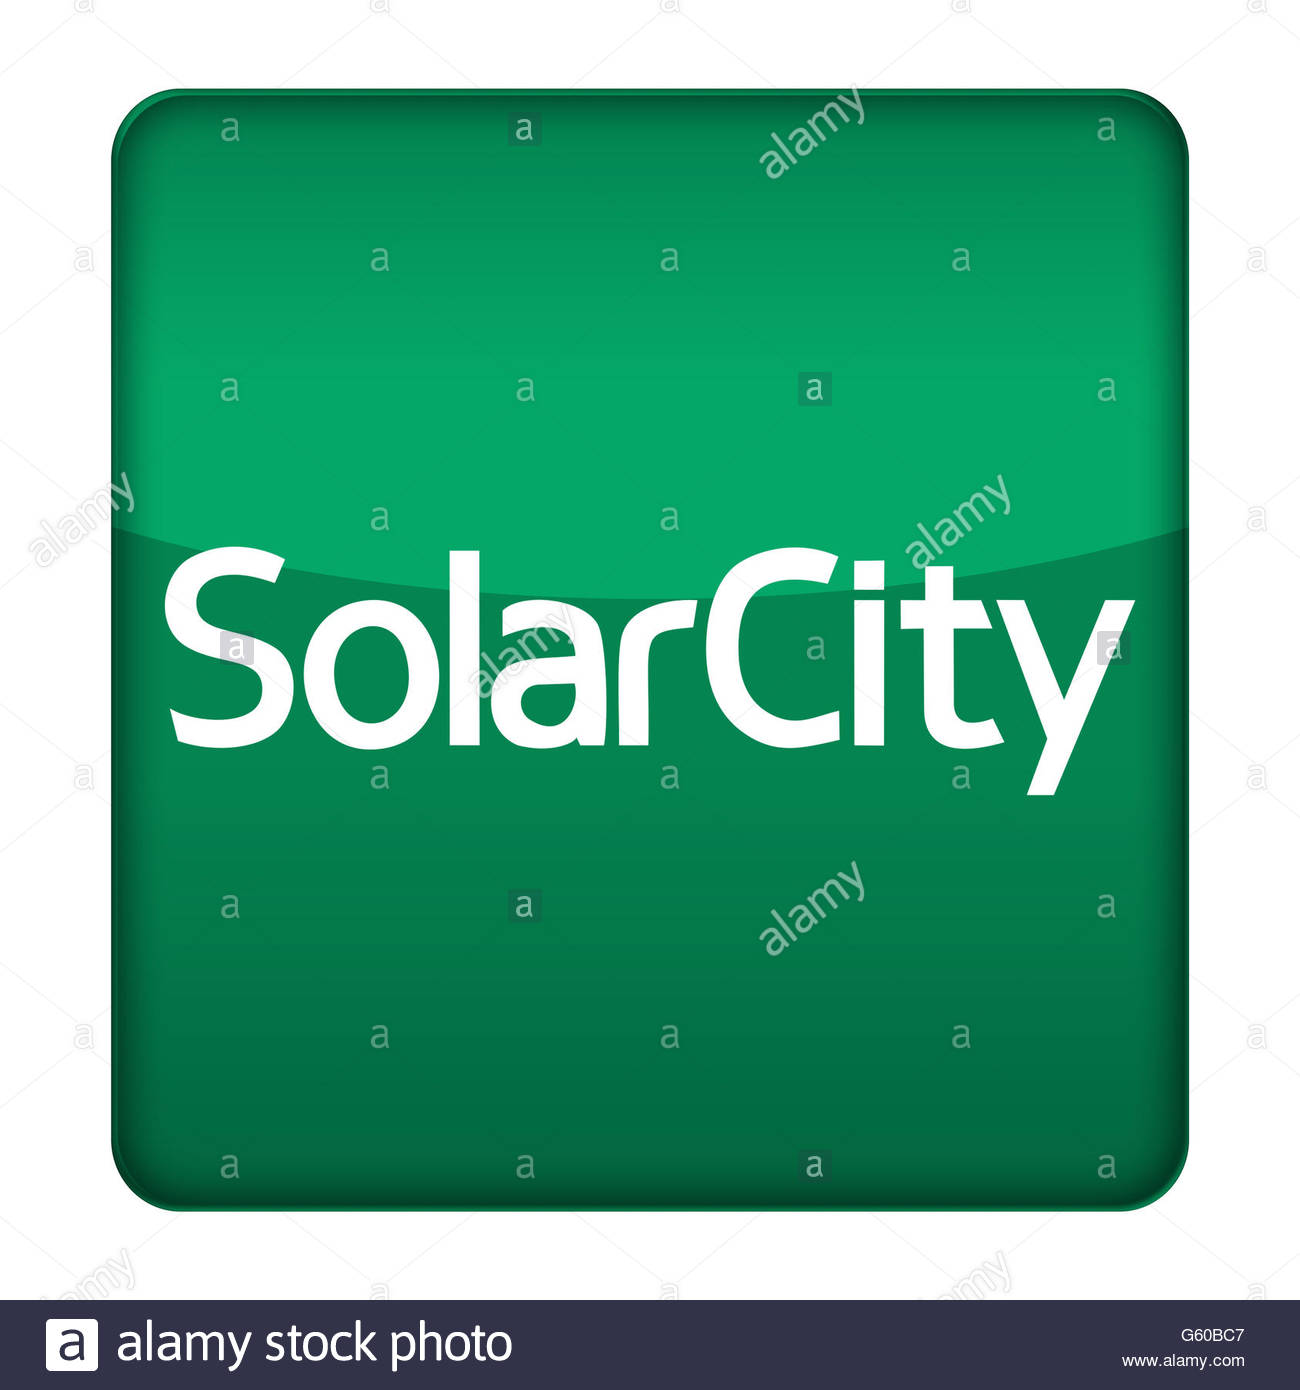 Solarcity logo icon stock photo royalty free image 106959111 alamy solarcity logo icon buycottarizona